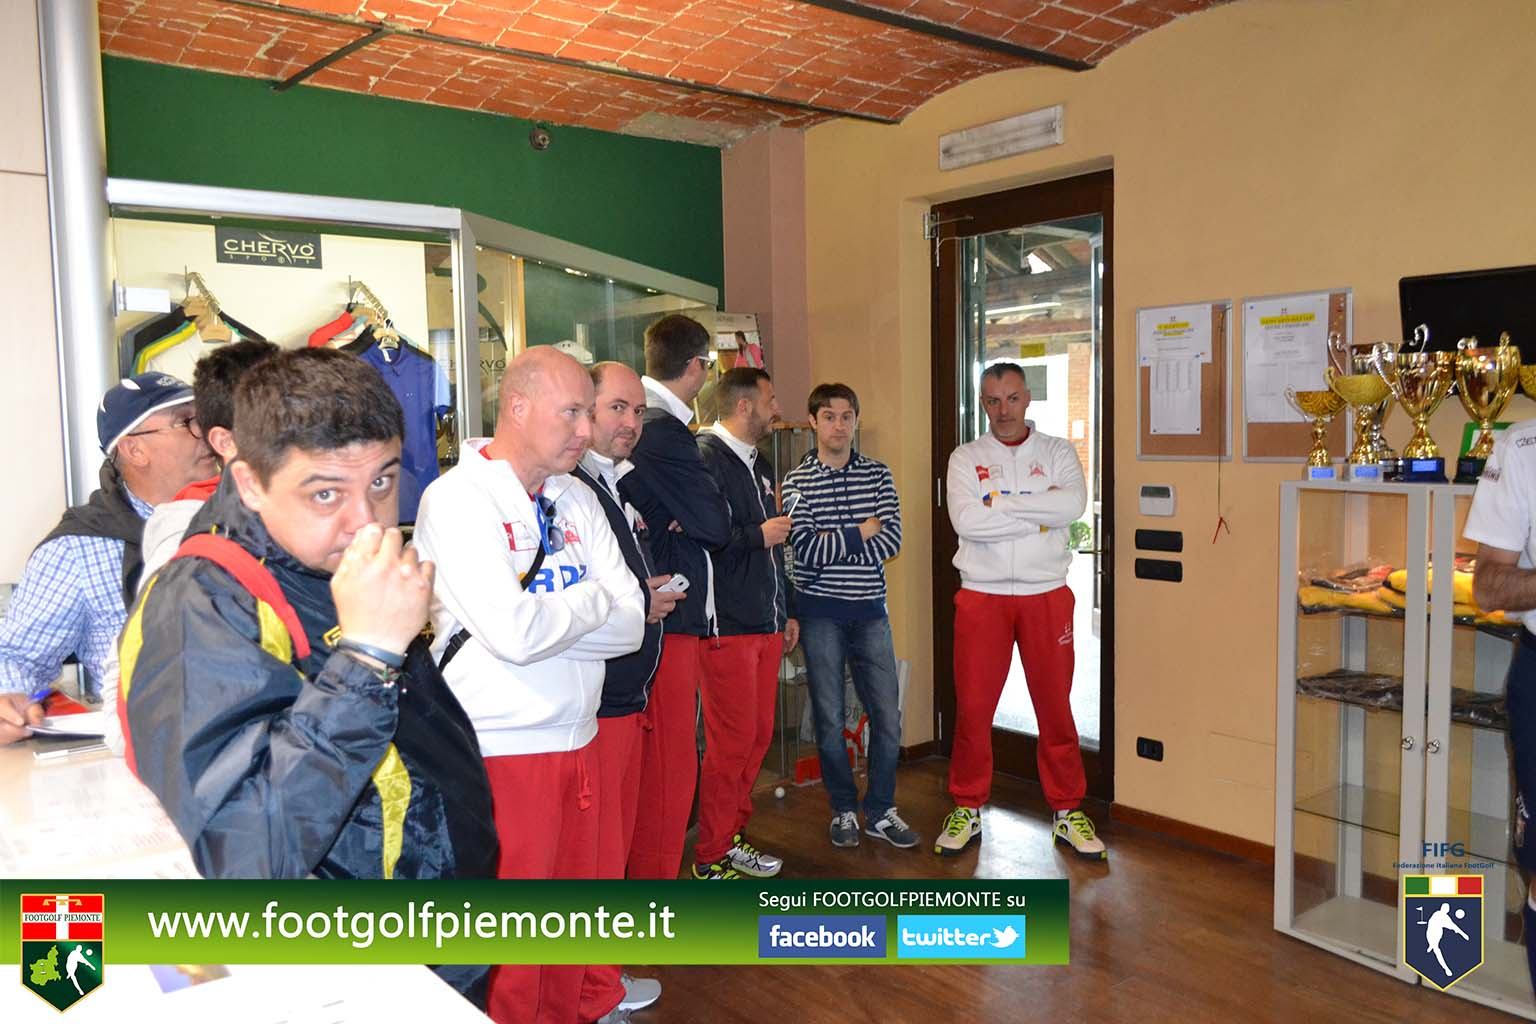 FOTO 9 Regions' Cup Footgolf Piemonte 2016 Golf Città di Asti (At) 30apr16-100